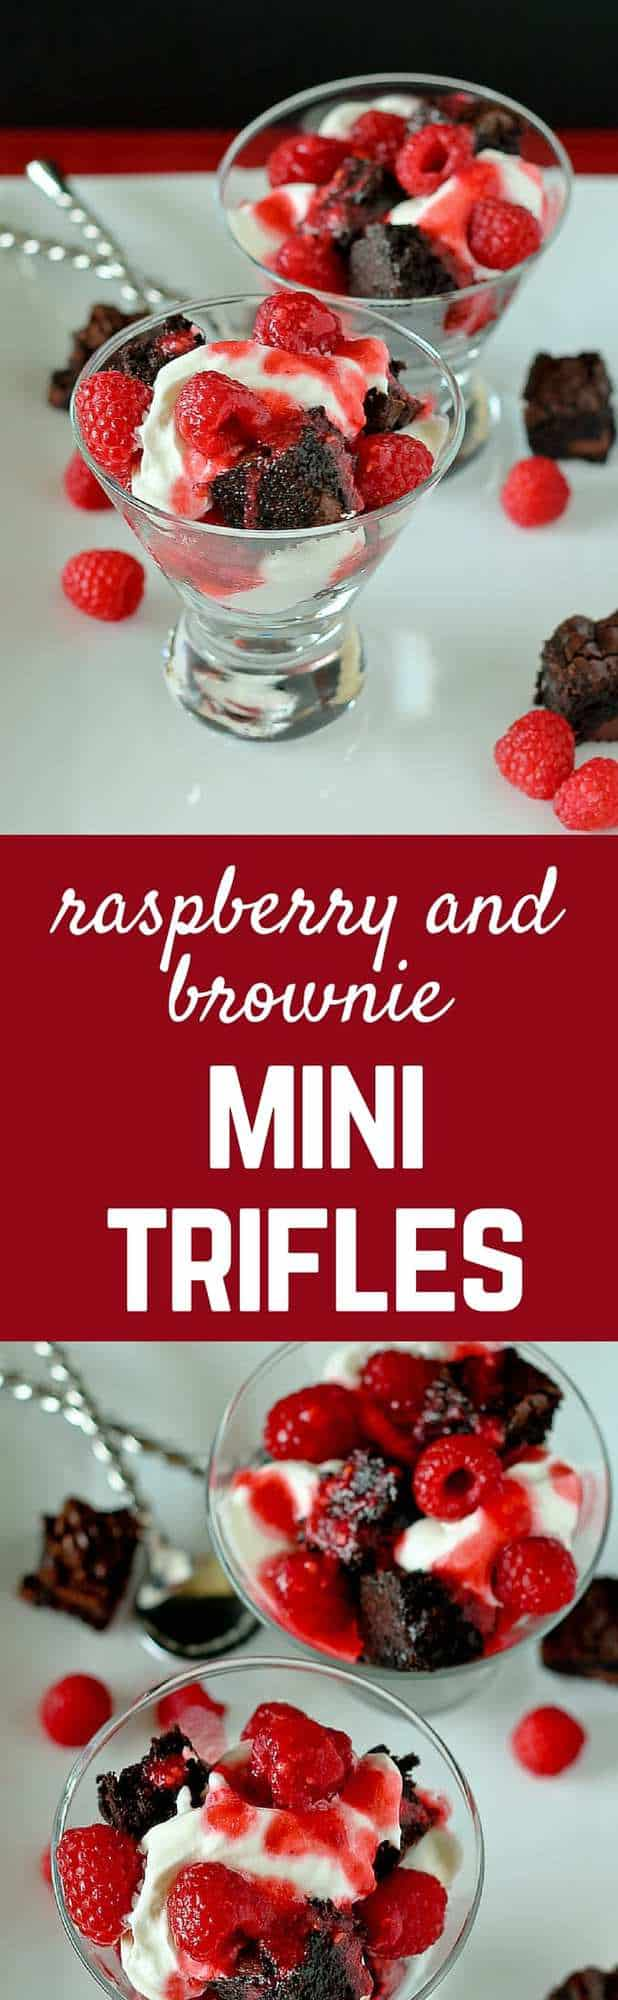 You'll love the sophisticated simplicity of this tasty mini trifle -- the rich chocolate brownies are balanced perfectly by fresh, ripe raspberries and lightly sweetened freshly whipped cream. Find the recipe on RachelCooks.com!